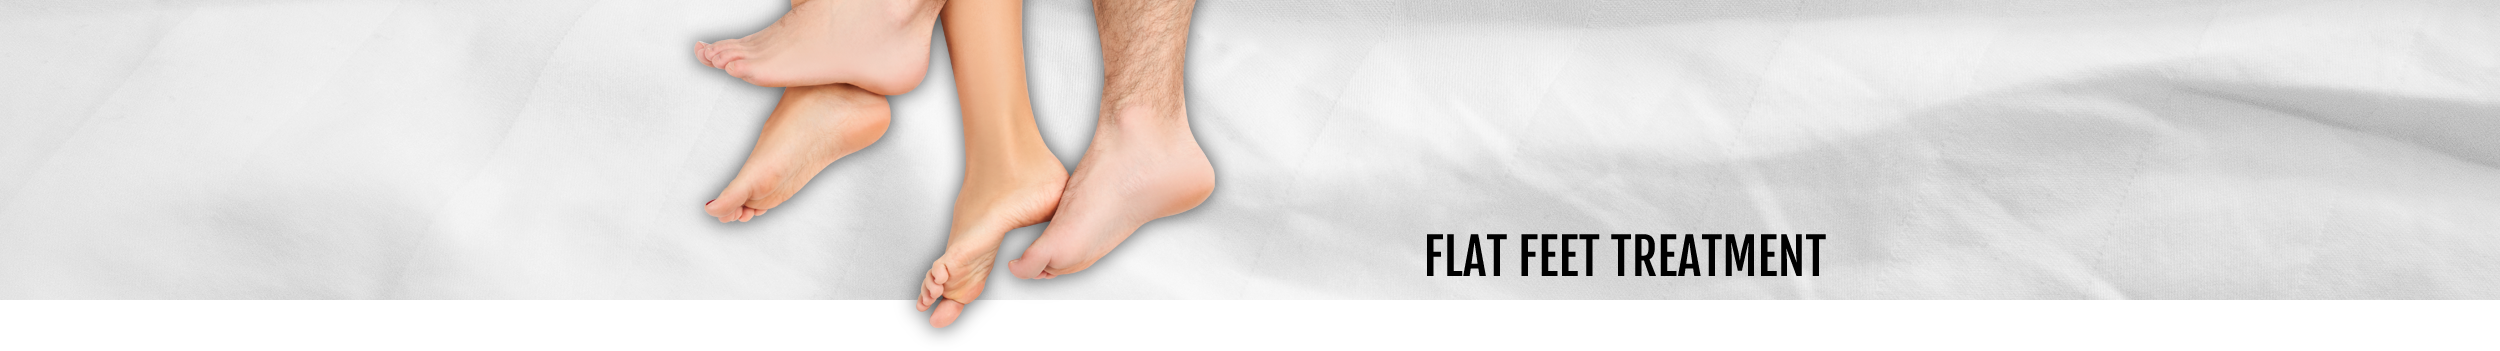 Flat Feet Treatment header for the Walk IN Foot Clinic in central London